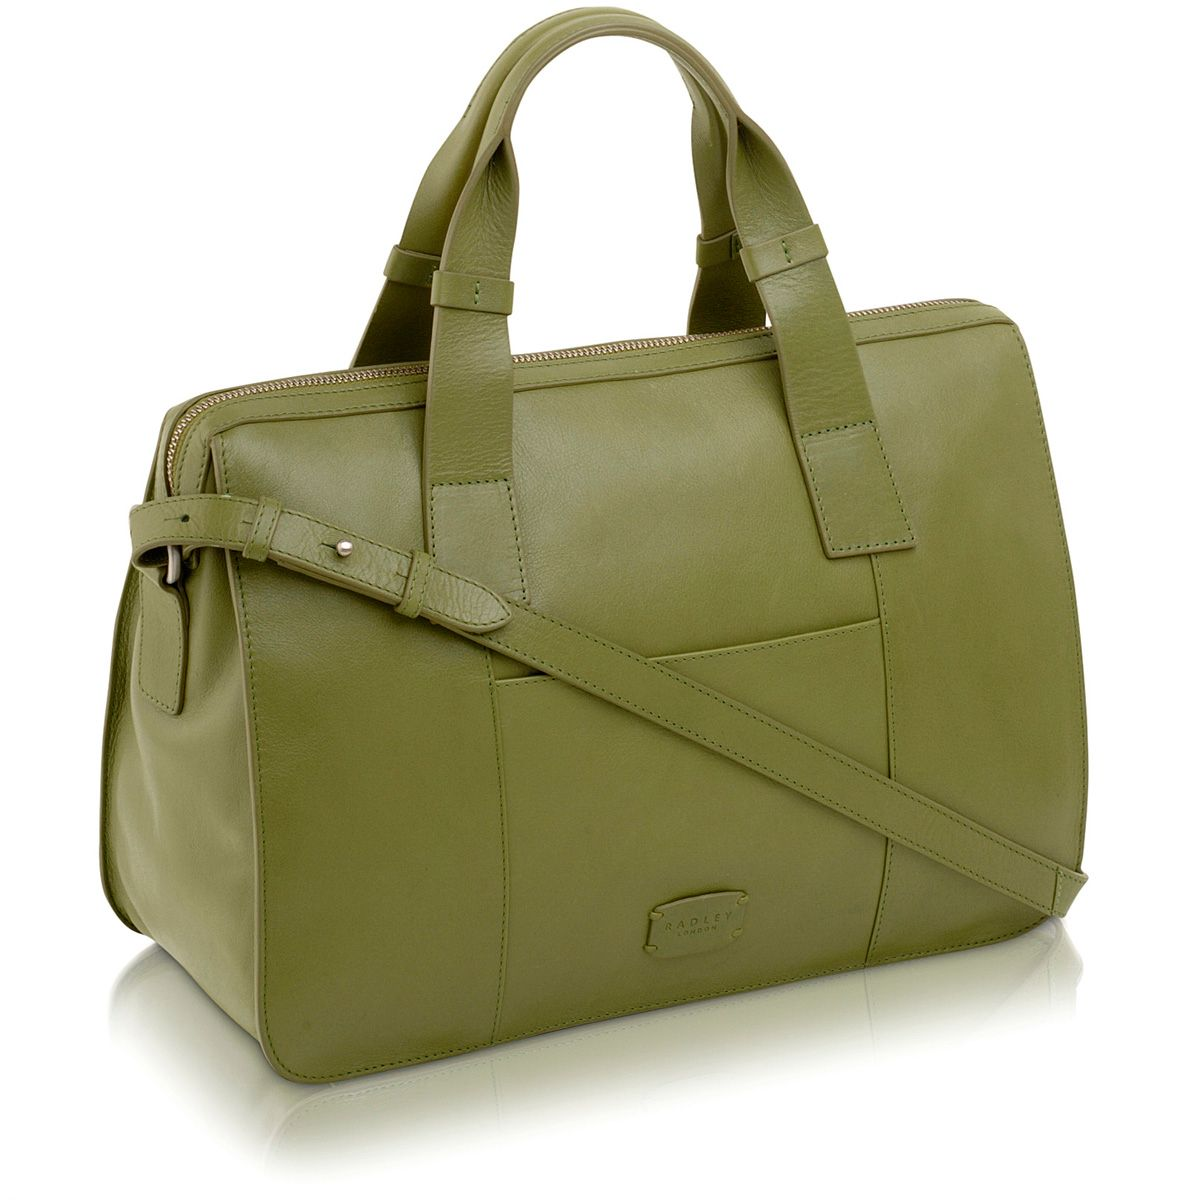 Maiden green large leather cross body tote bag